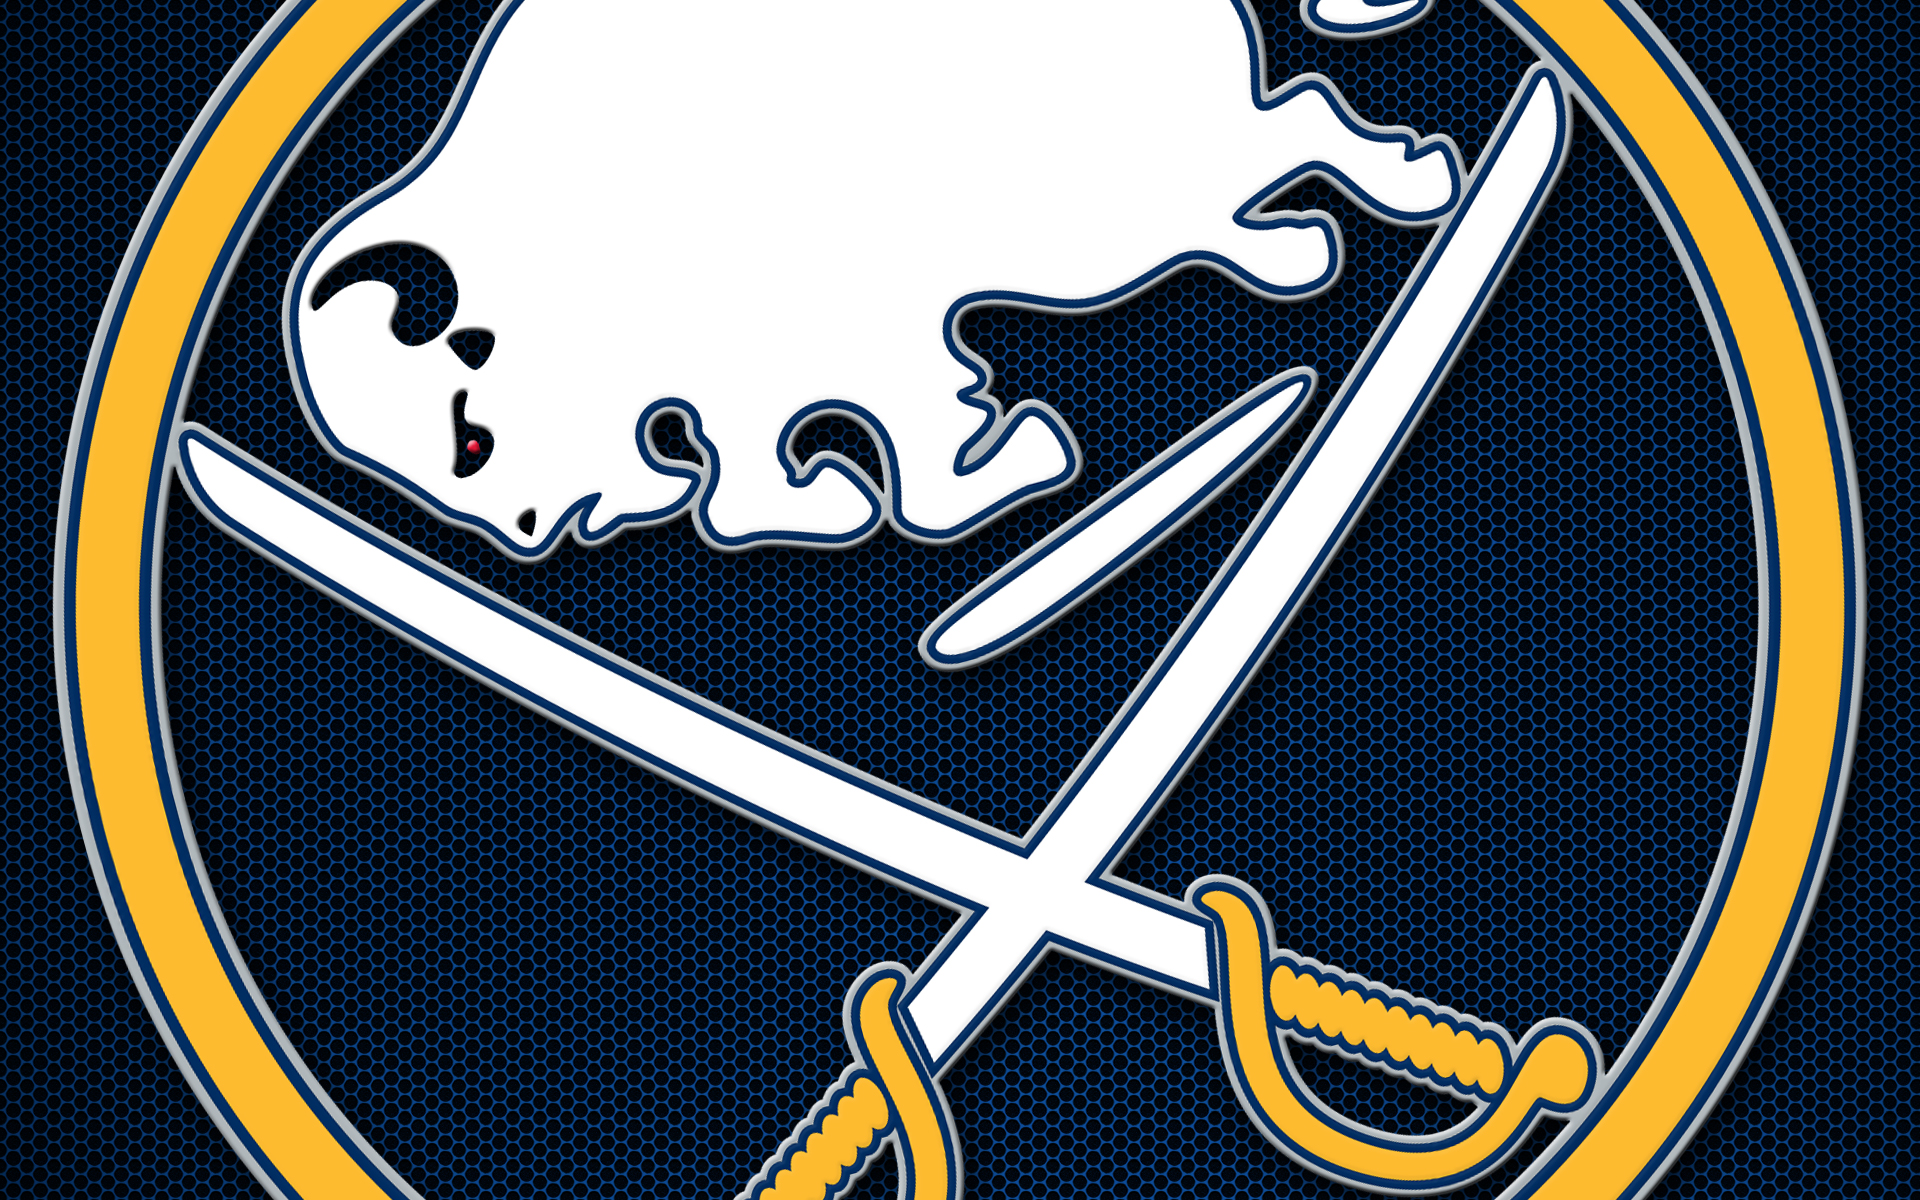 The Buffalo Sabres are a professional ice hockey team based in Buffalo New York They are members of the Atlantic Division of the Eastern Conference of the National